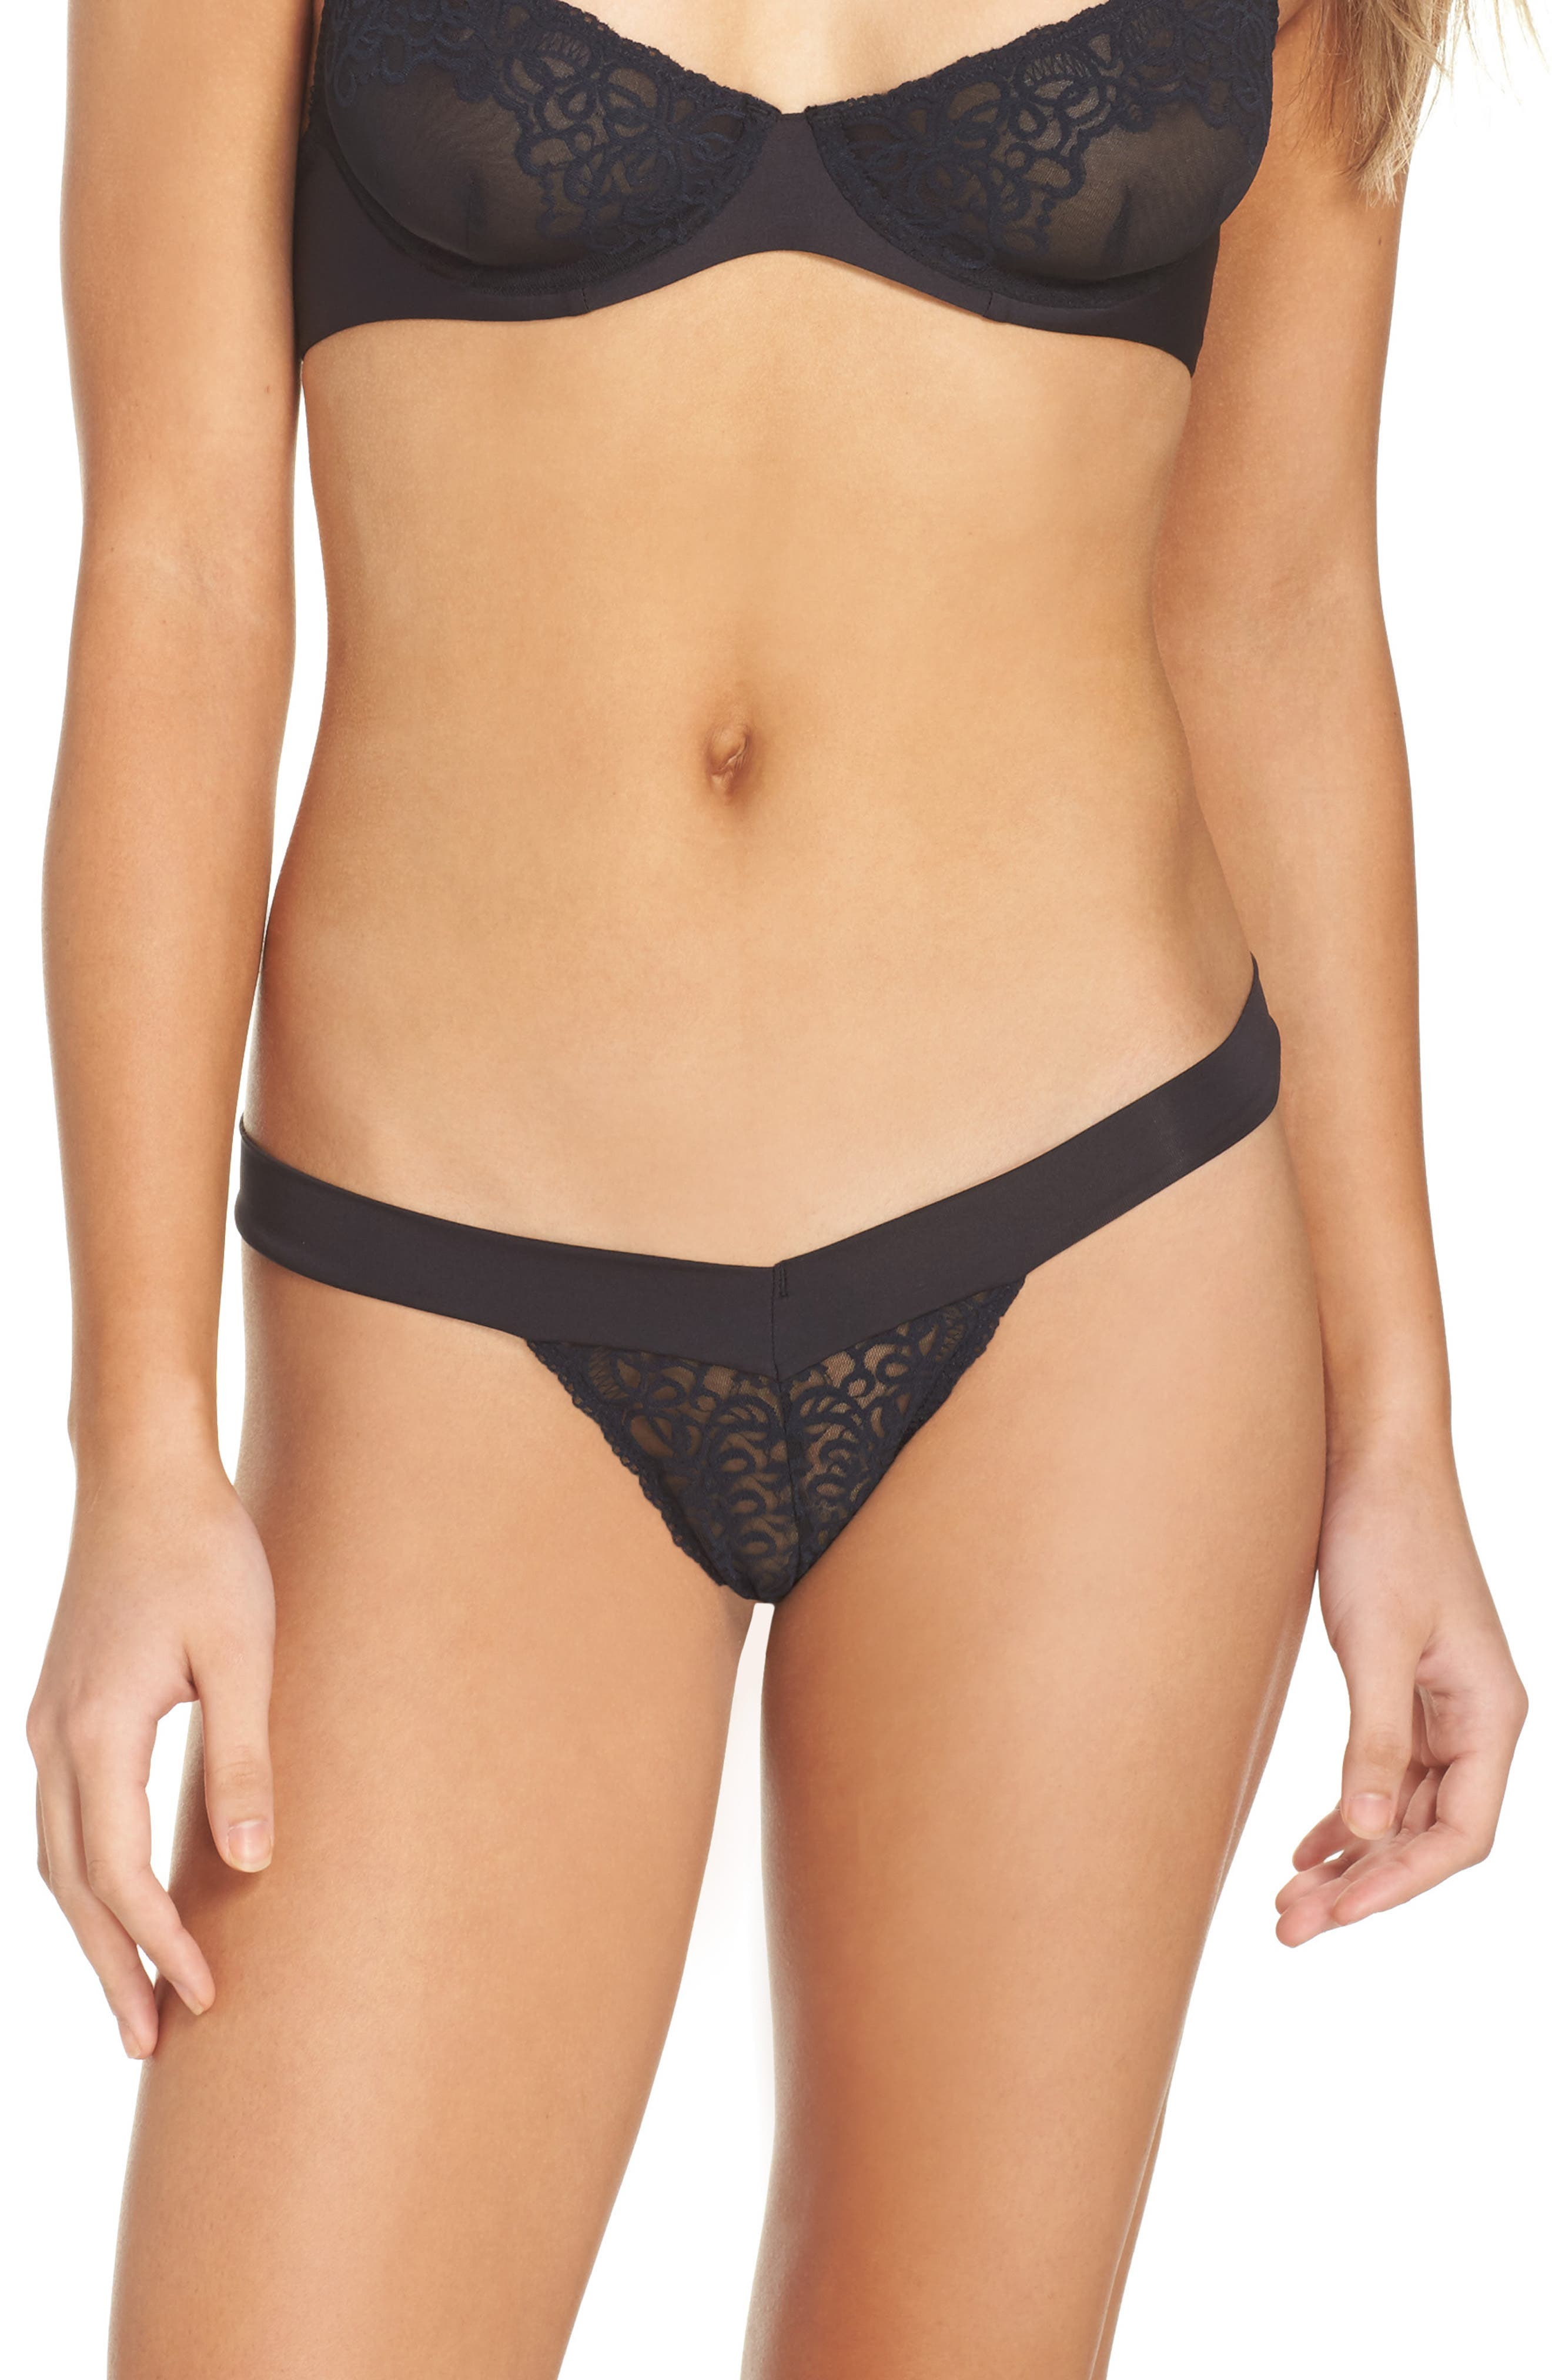 Intimately FP 'Wishing Well' Thong,                         Main,                         color, 001